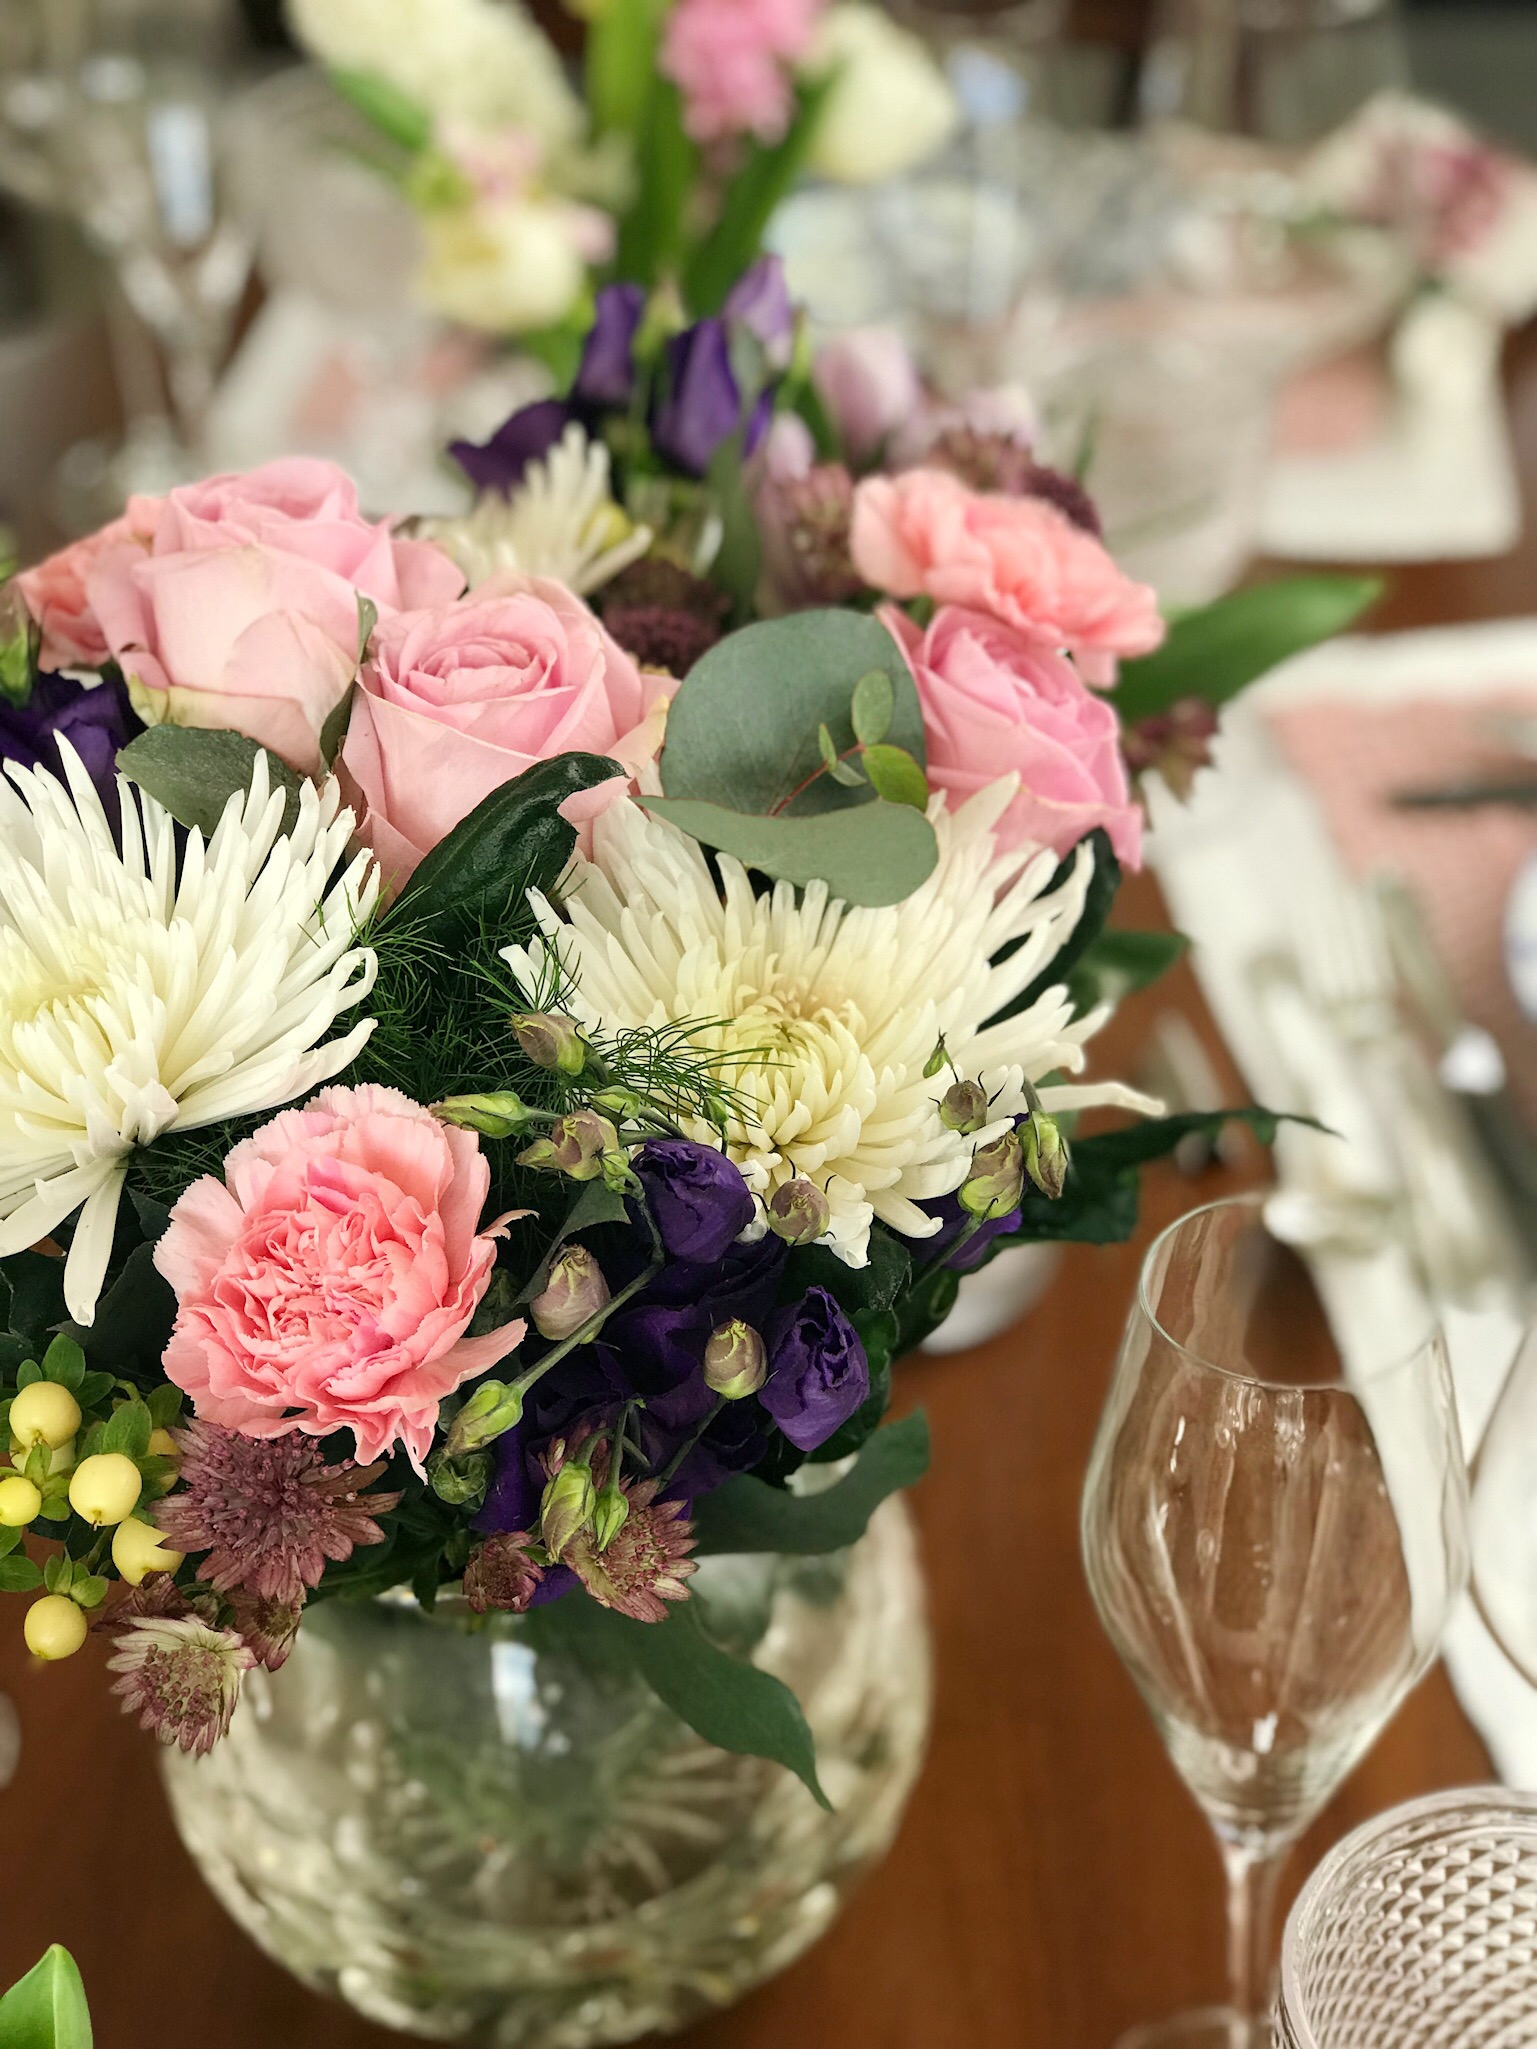 A beautiful tablescape created from a pink purple and white bouquet it has light pink roses rose carnations purple lisianthus white aster eucalyptus leaves and a pretty tine violet flowers i dont know the name mightylinksfo